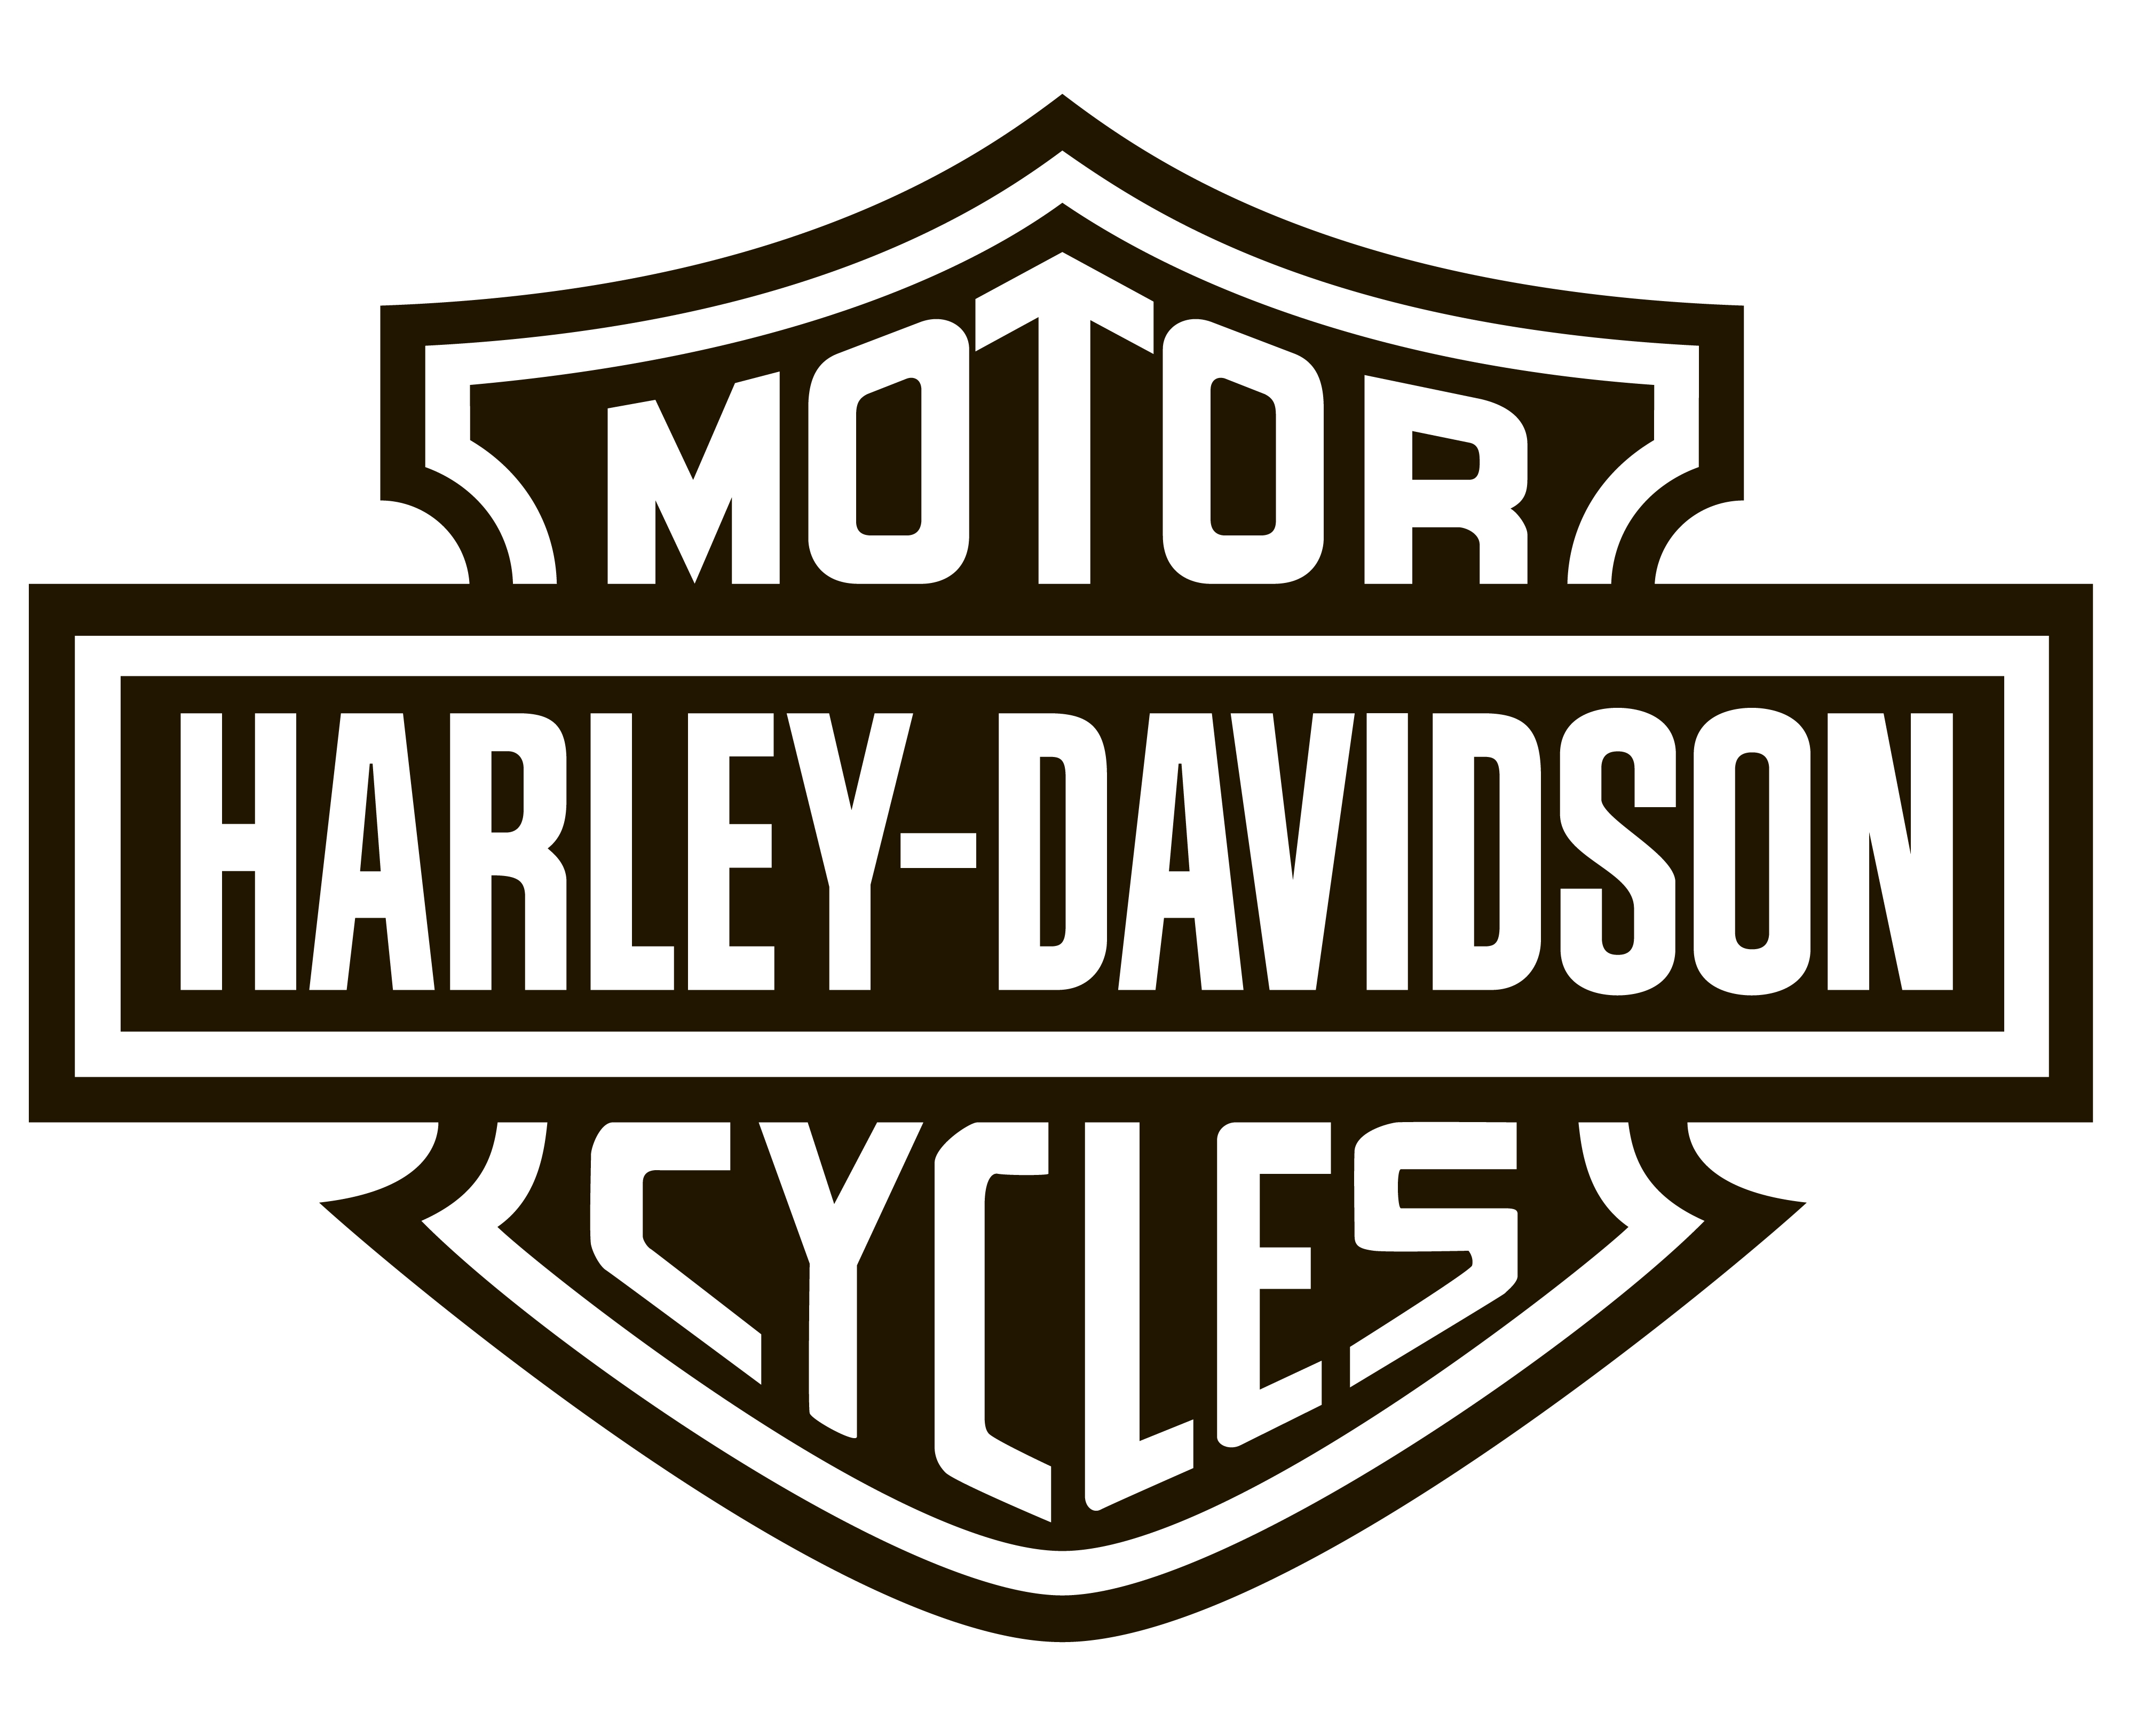 harley-davidson motorcycle logo history and meaning, bike emblem